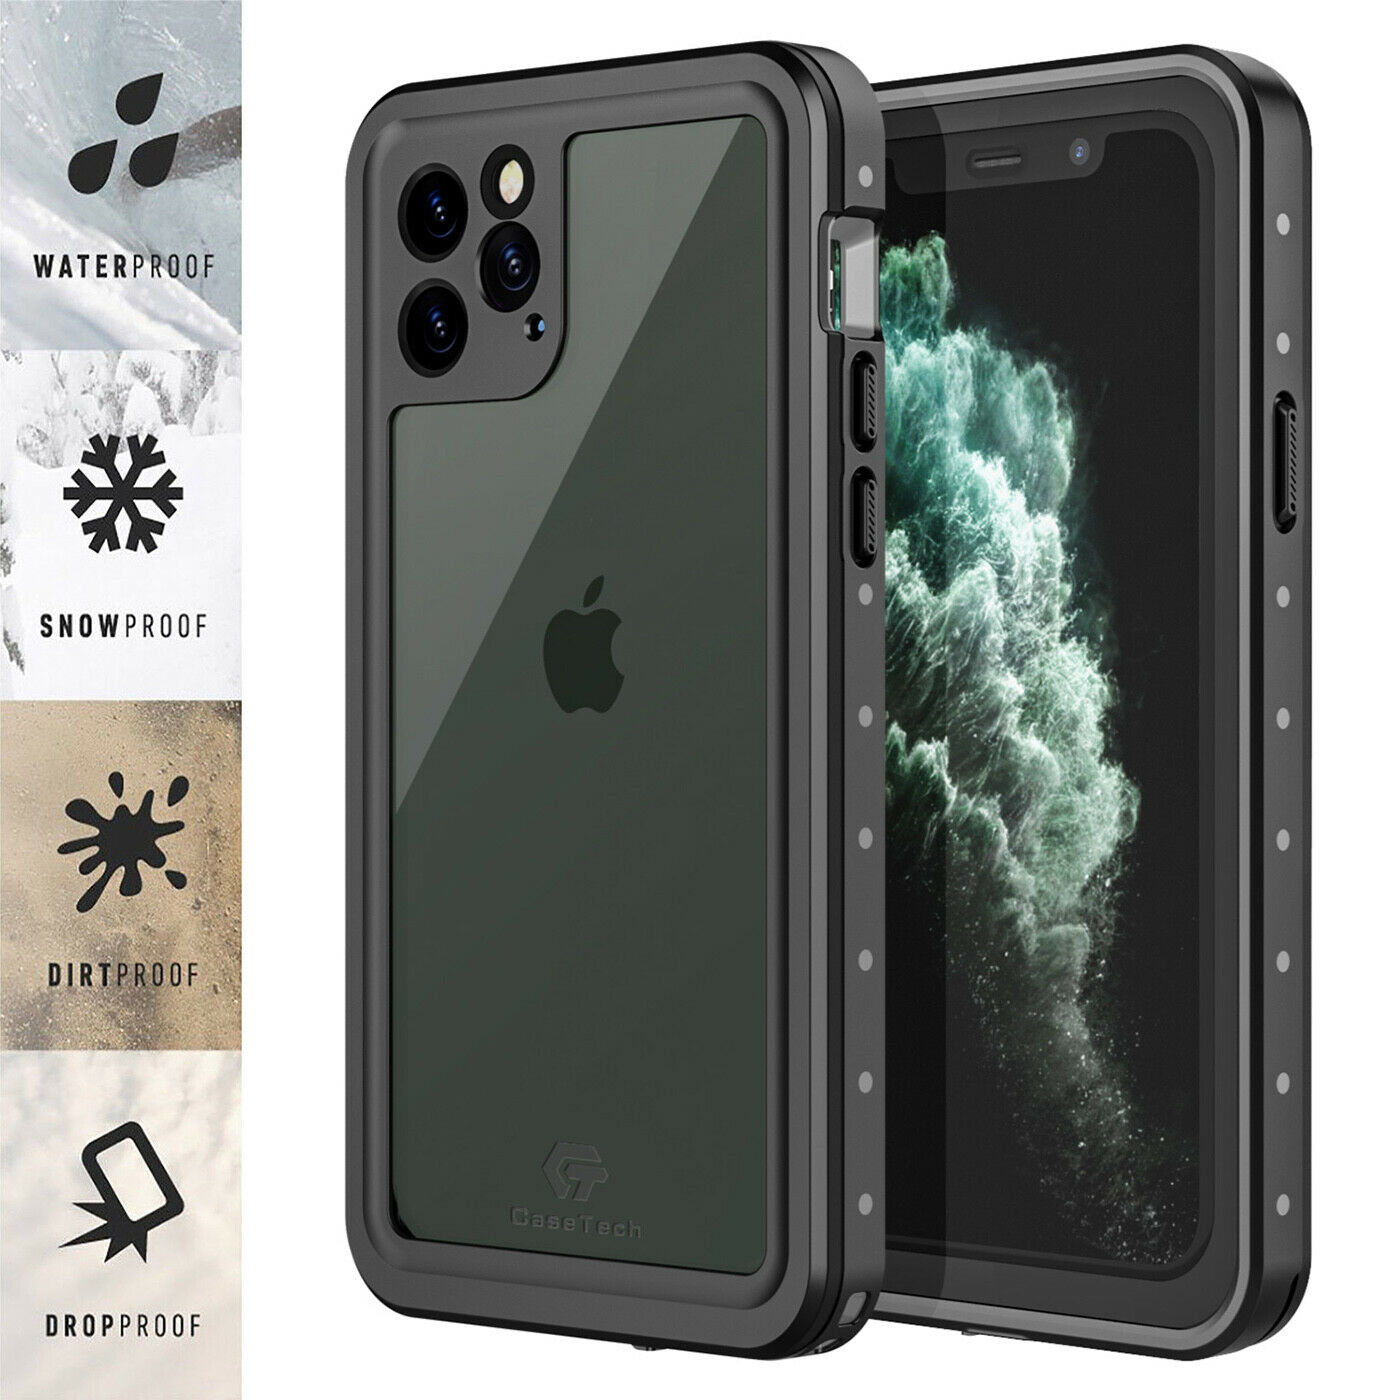 For Apple iPhone 11 Pro Max Waterproof Case Cover w/ Built-i